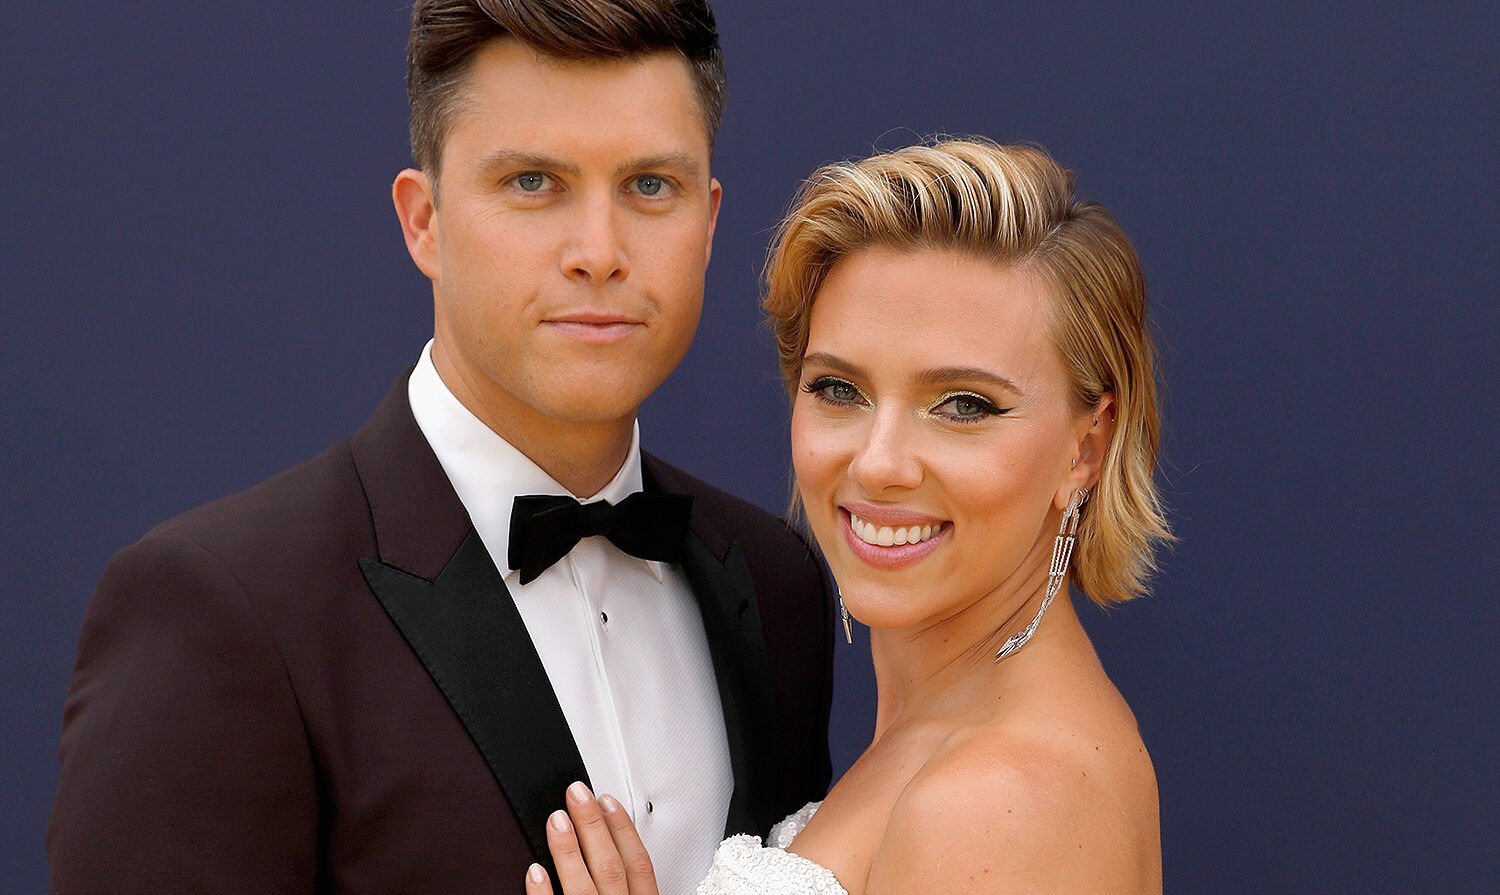 Colin Jost And Scarlett Johansson: Is He Jealous Of Her On-Screen Romances? – Says He Wants Her To Do Only 'Voice Work!'